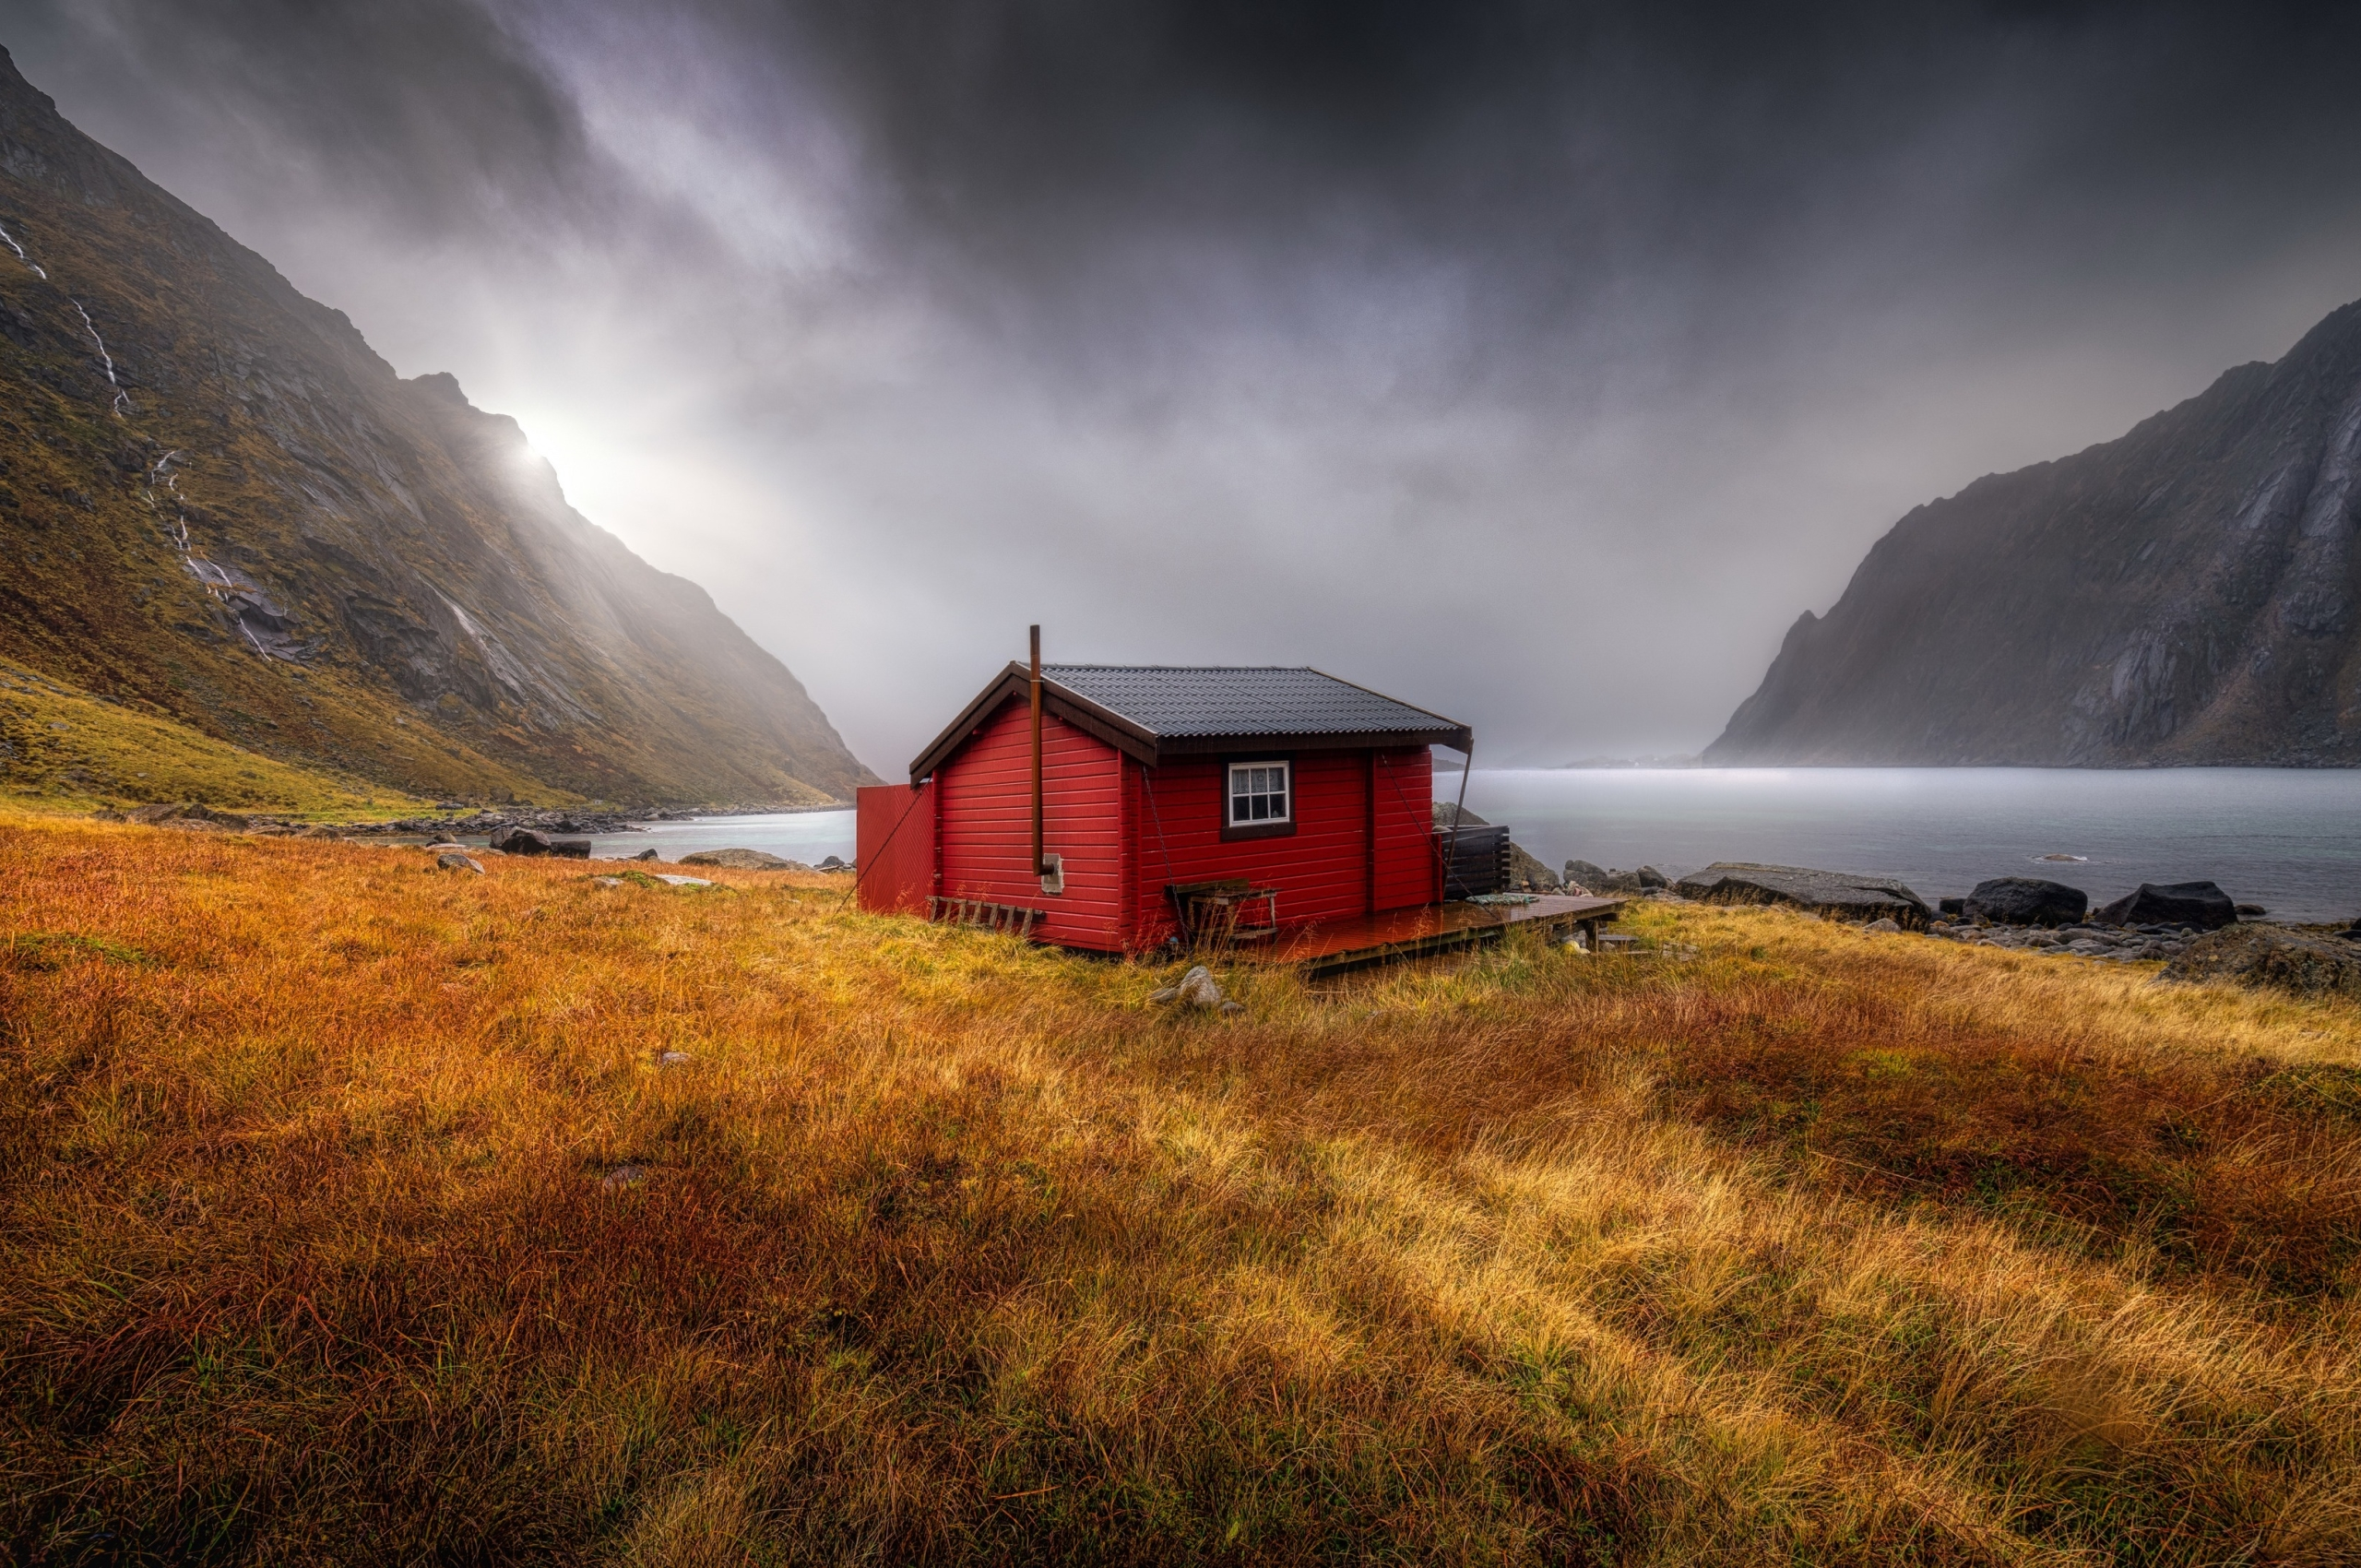 Red Cabin at Bay Wallpaper in 2560x1700 Resolution